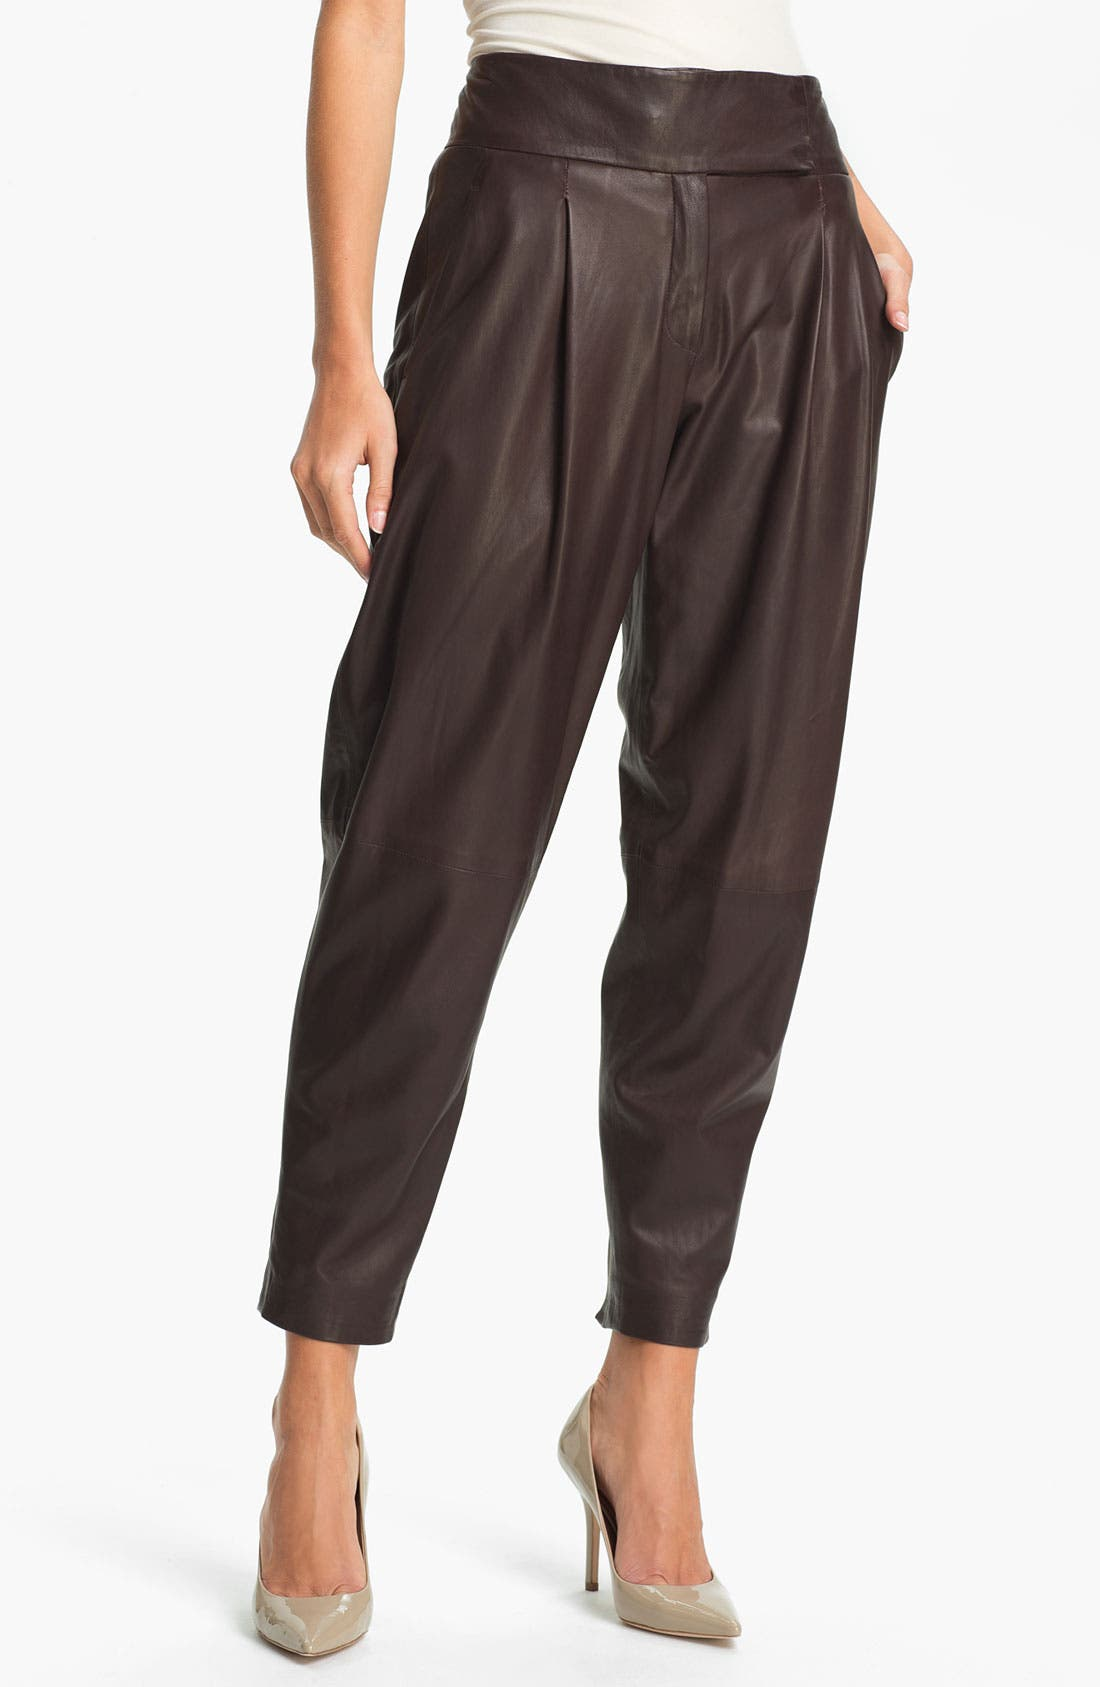 Main Image - Theory 'Kina L.' Tapered Leather Pants